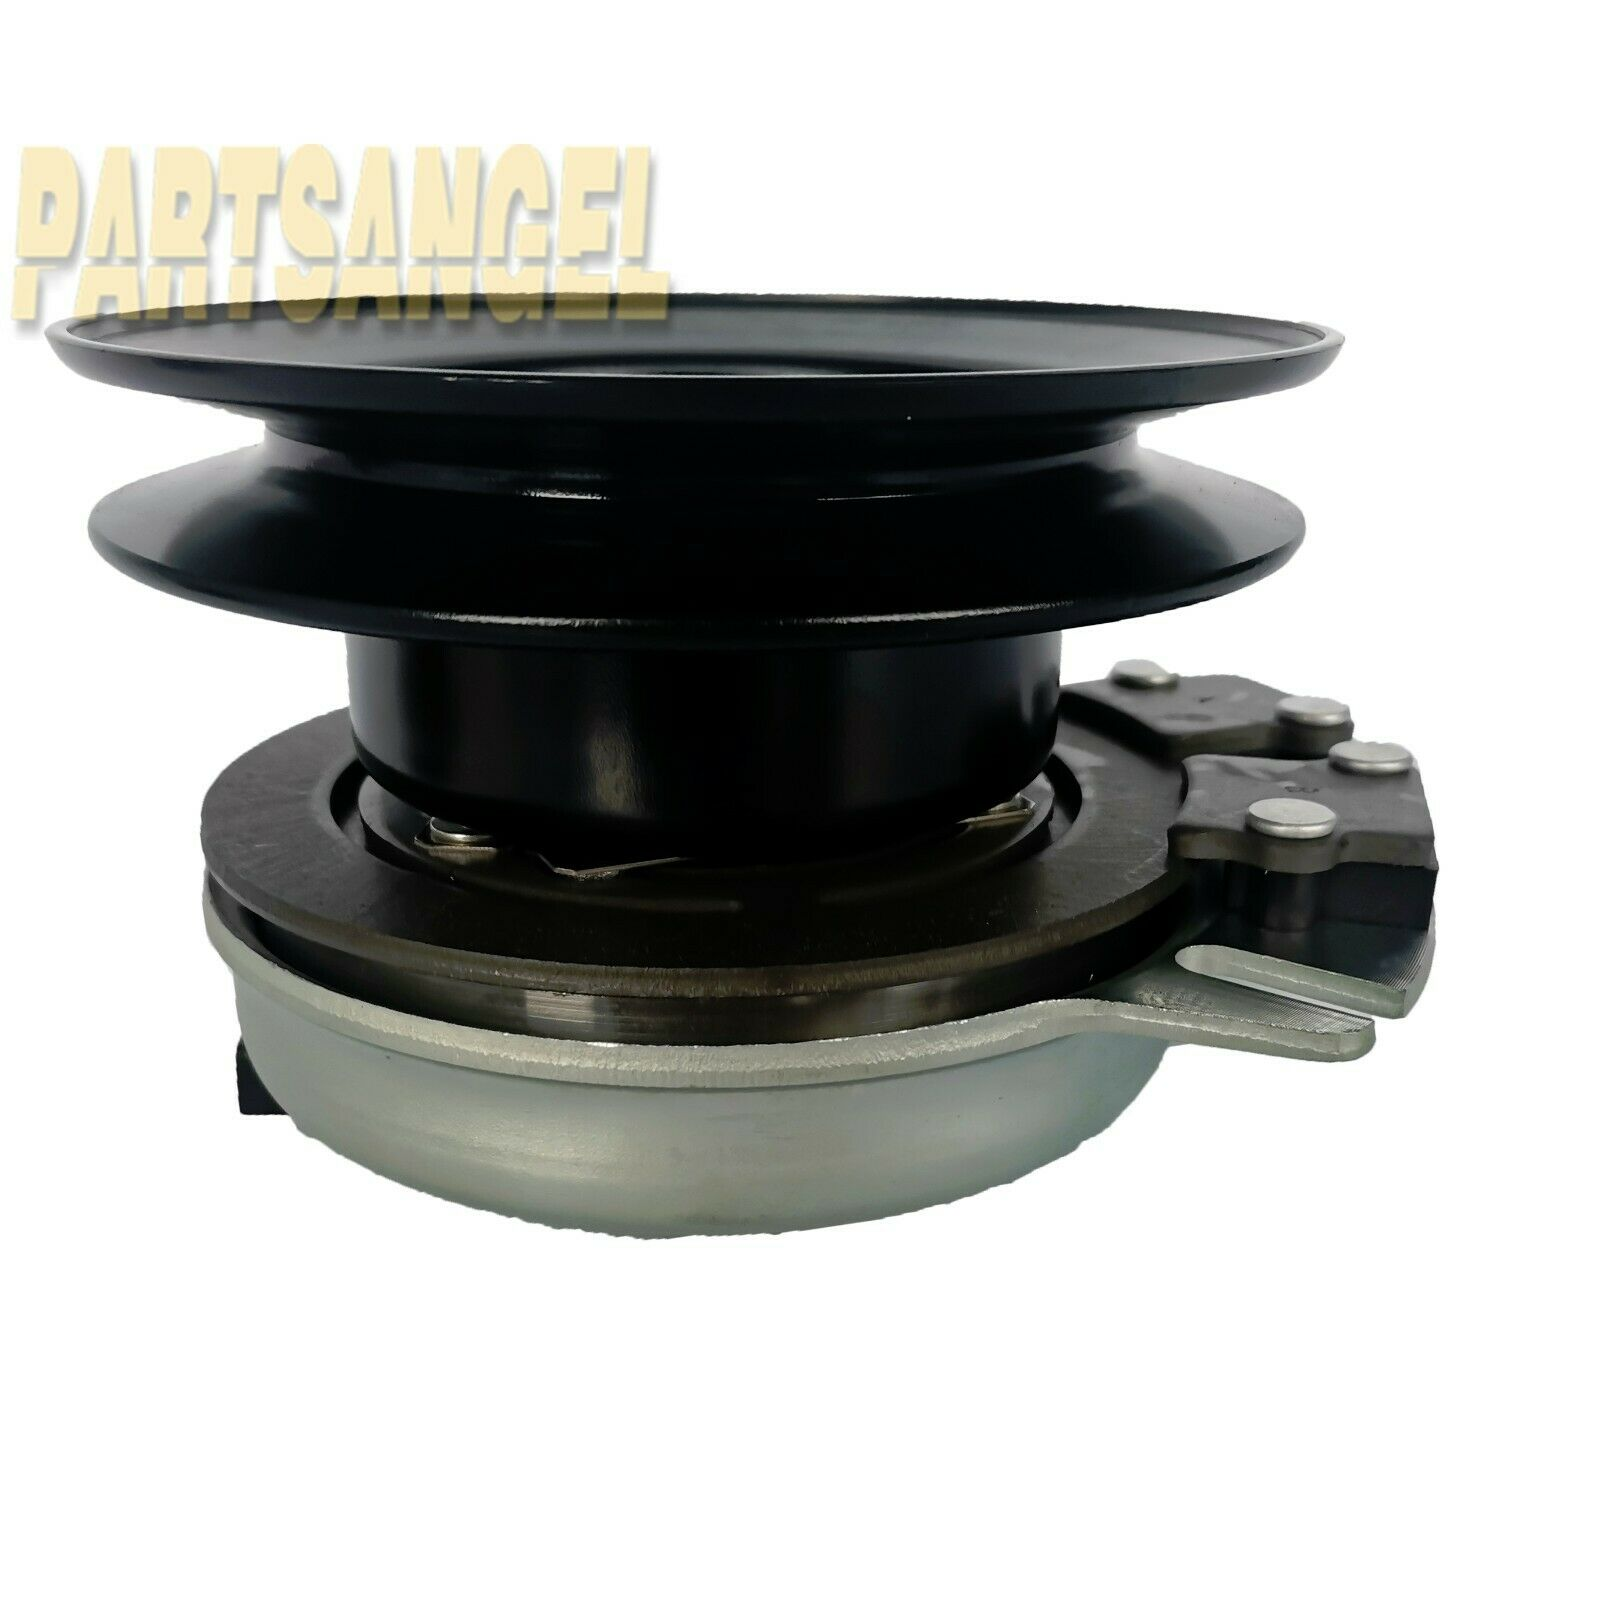 Electric Pto Clutch For Cub Cadet Lt1042 917 04163a917 04163 1862 Wire Harness Upgraded 1 Of 4free Shipping